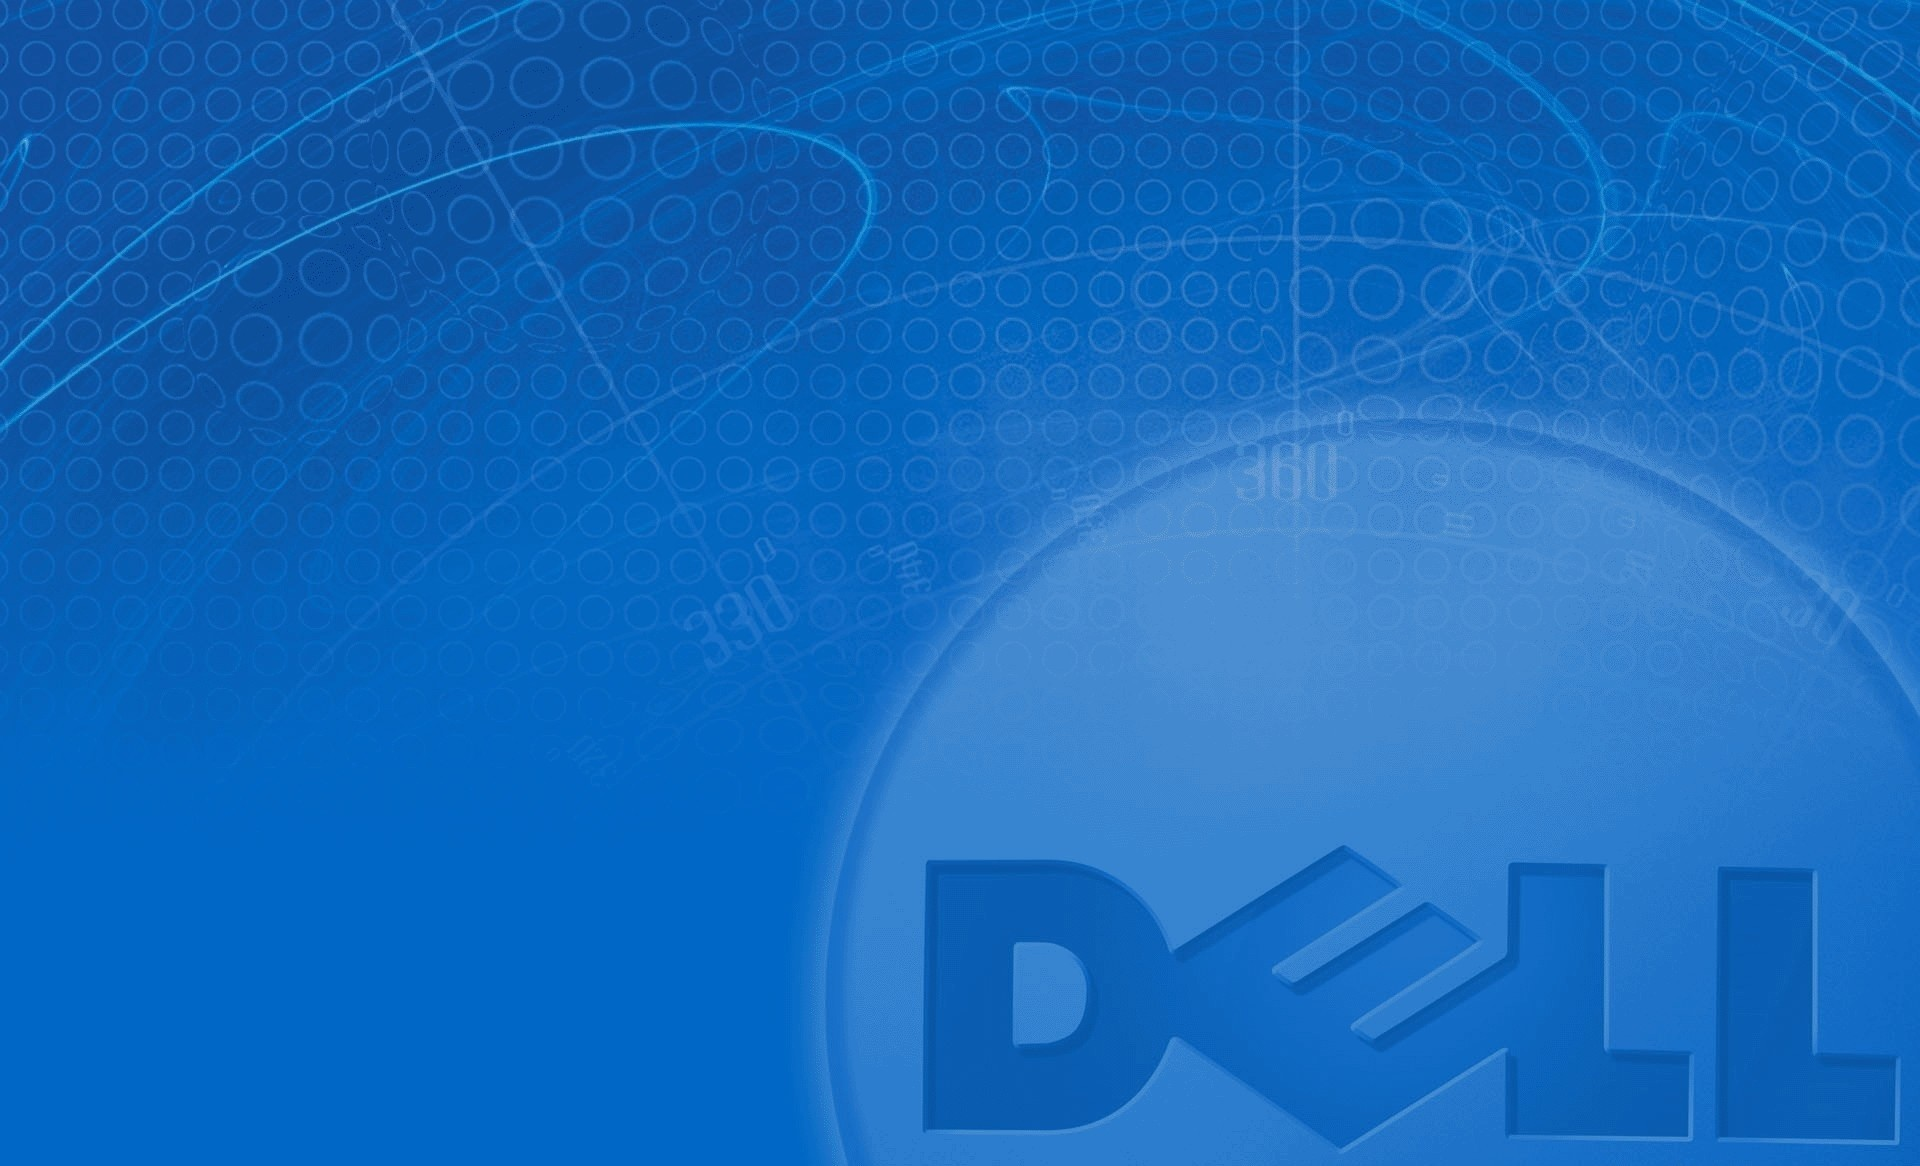 Dell Inspiron Wallpaper HD with HD Wallpaper Resolution px 245.56  KB Computer Wallpapers Cool Optiplex